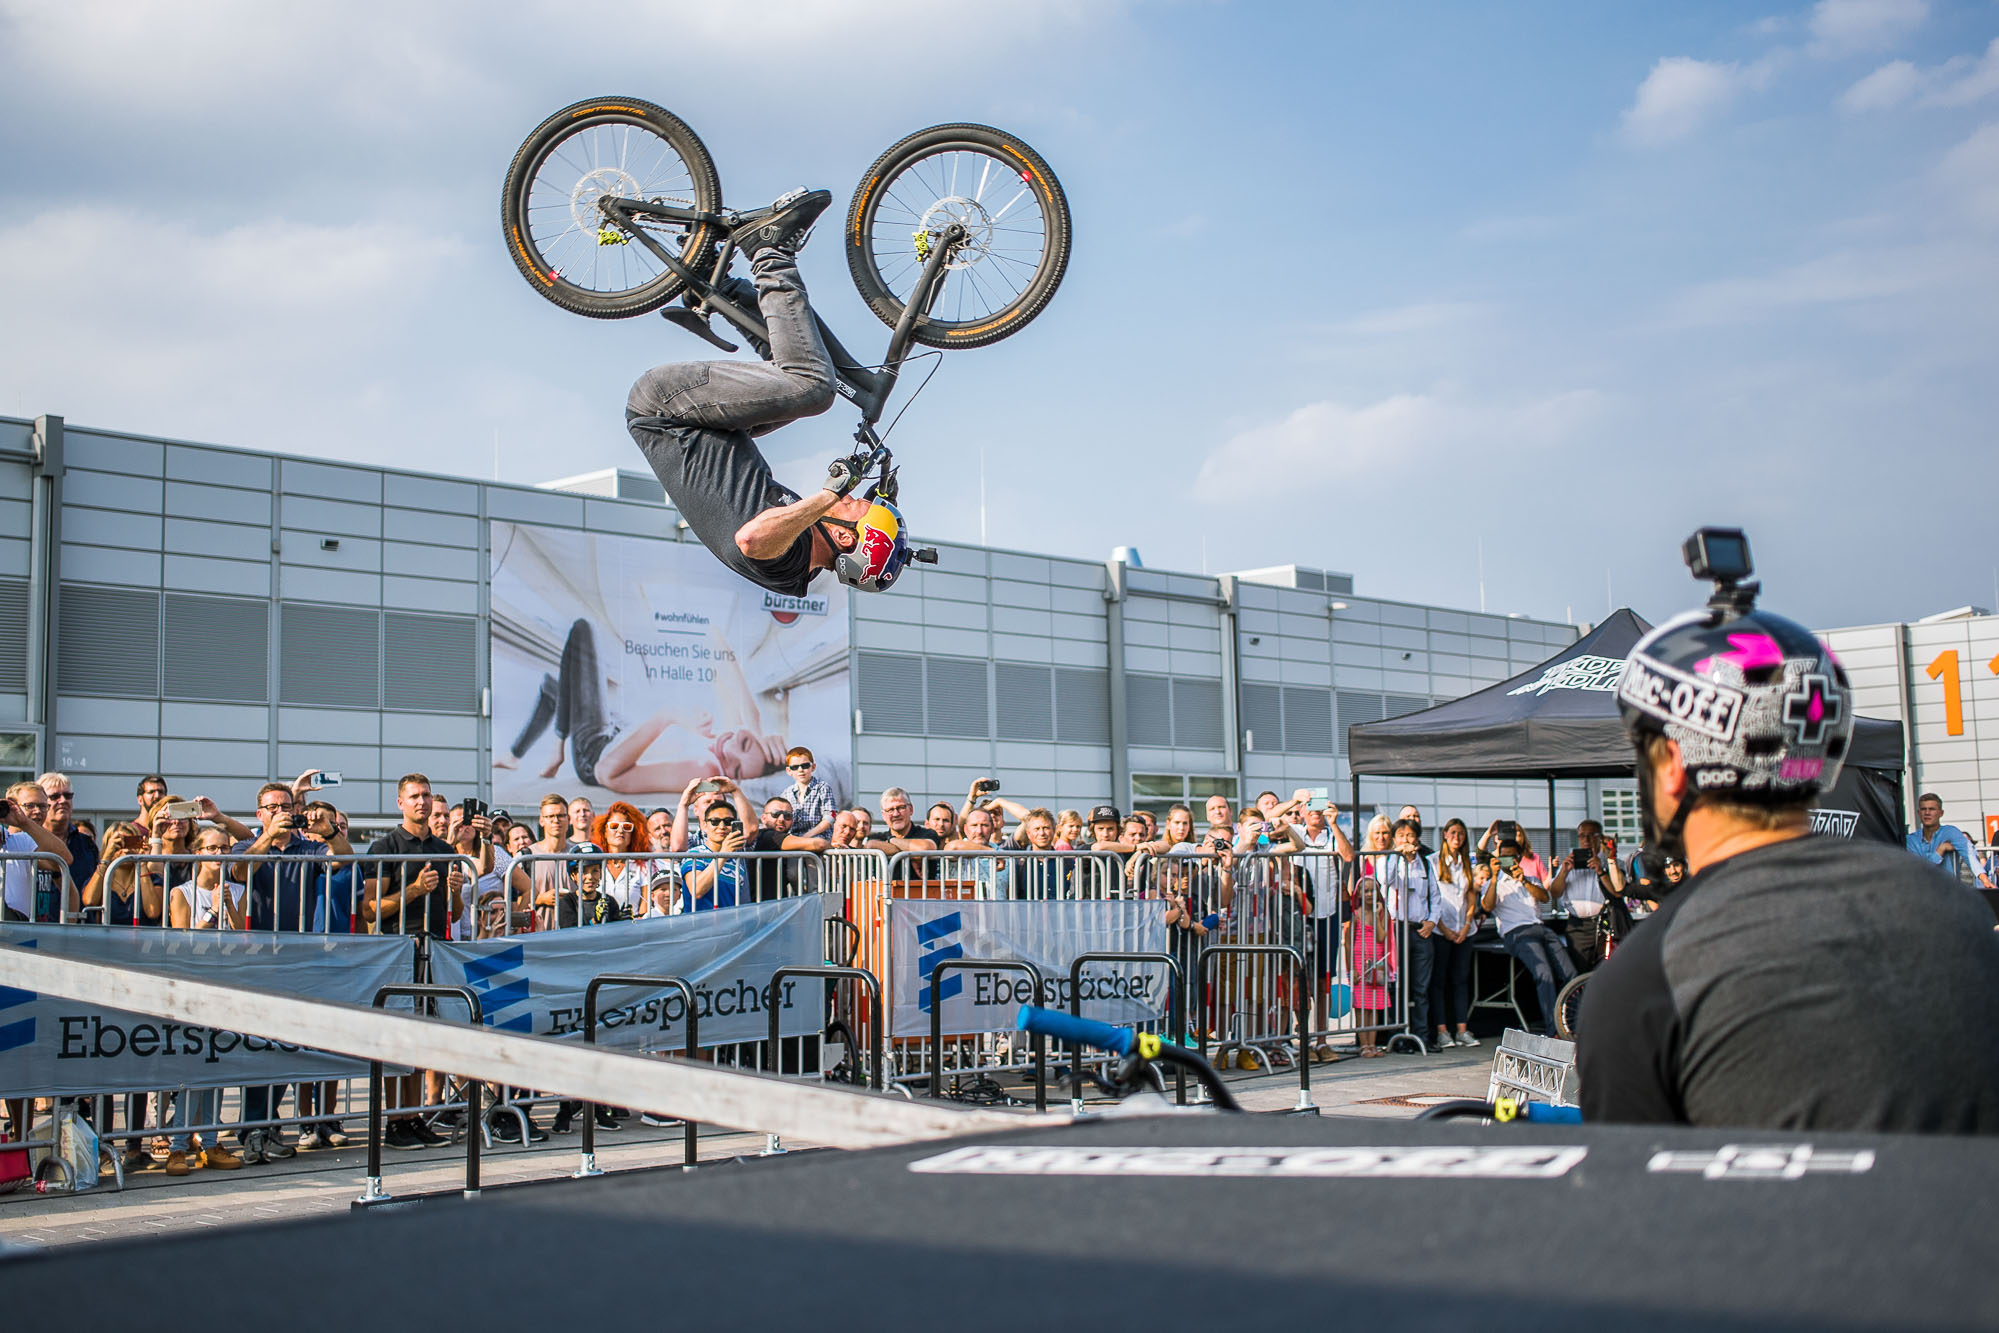 03_Caravan-Salon-Du-sseldorf-Drop-Roll-Show-2017-Danny-MacAskill-Photo-by-Dave-Mackison-2